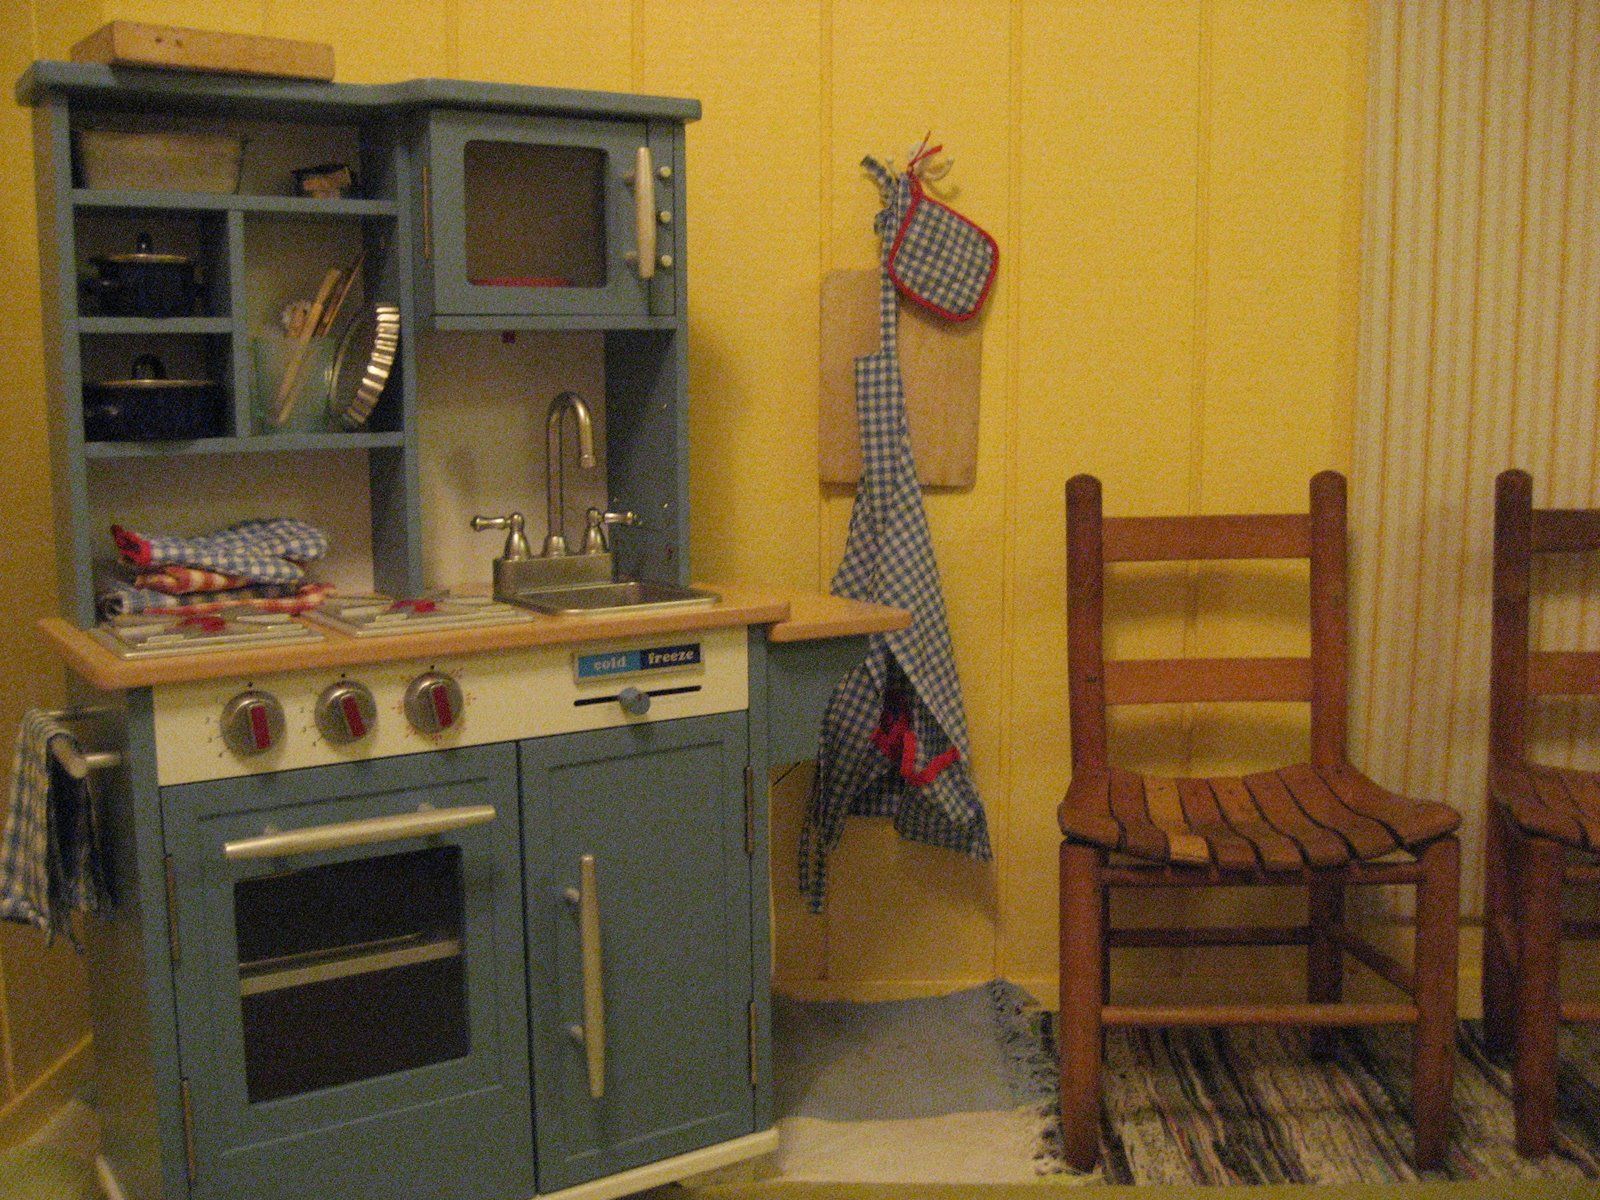 Target Kitchen Play Set